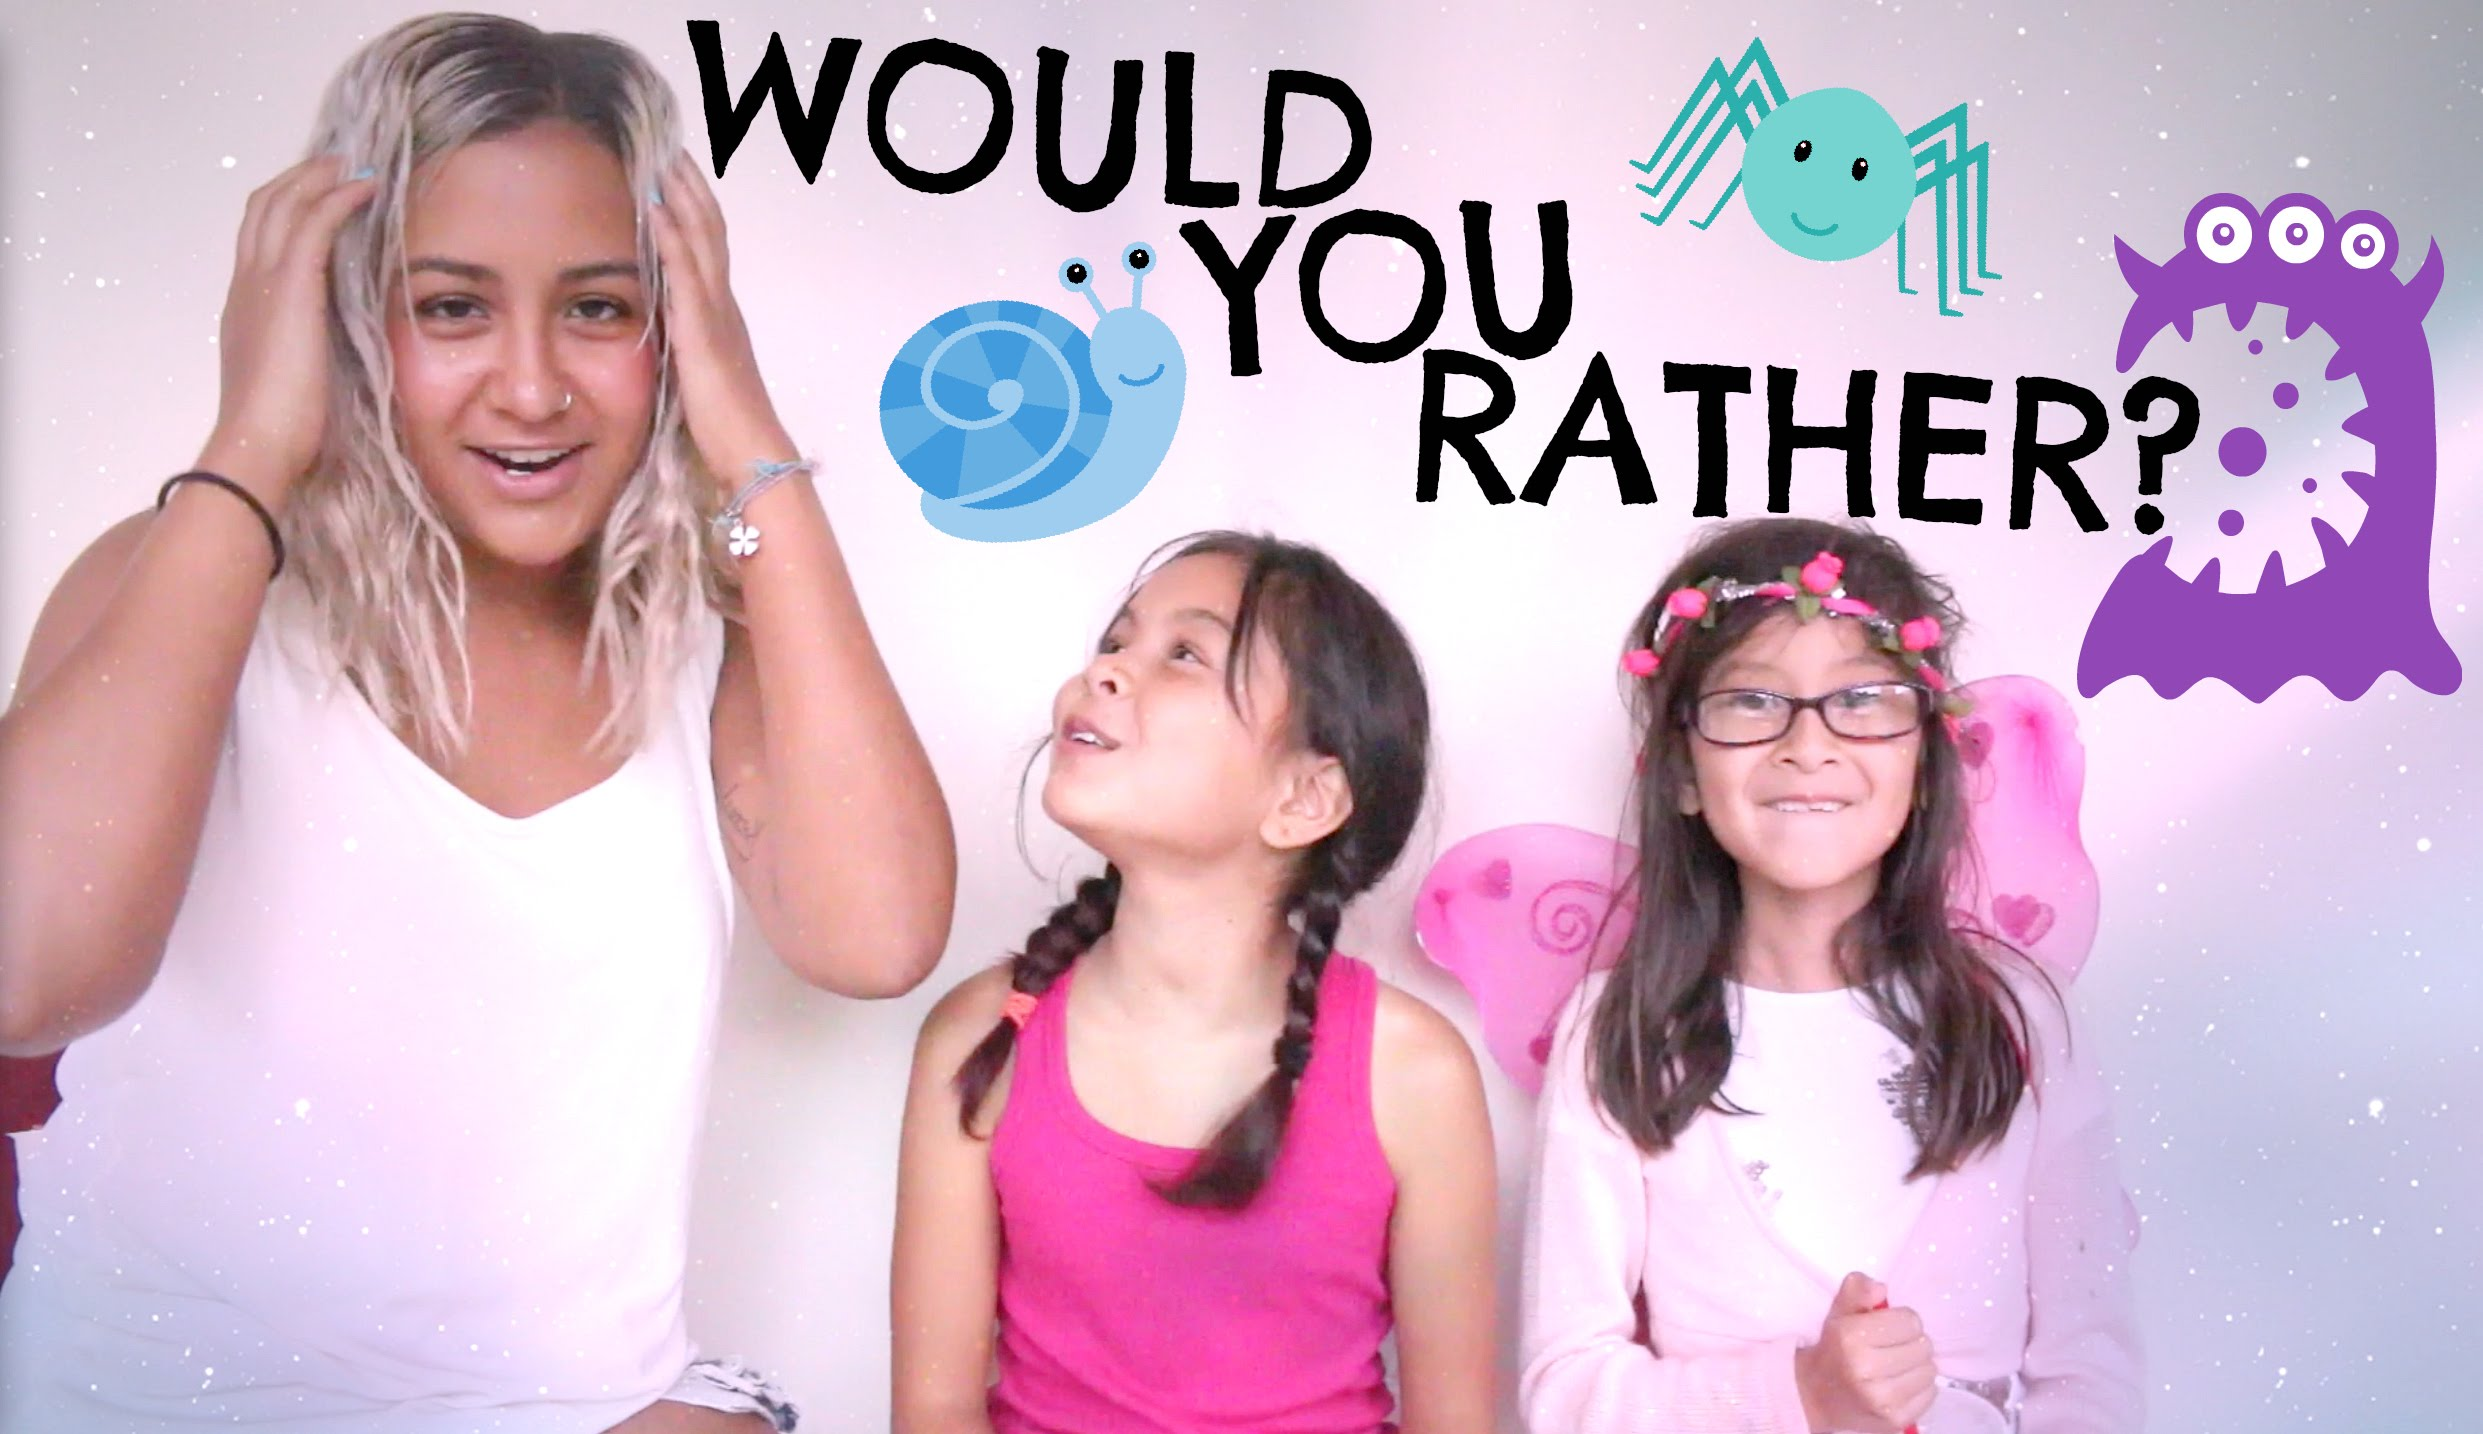 100 Best Would You Rather Questions You Can Ever Ask Someone